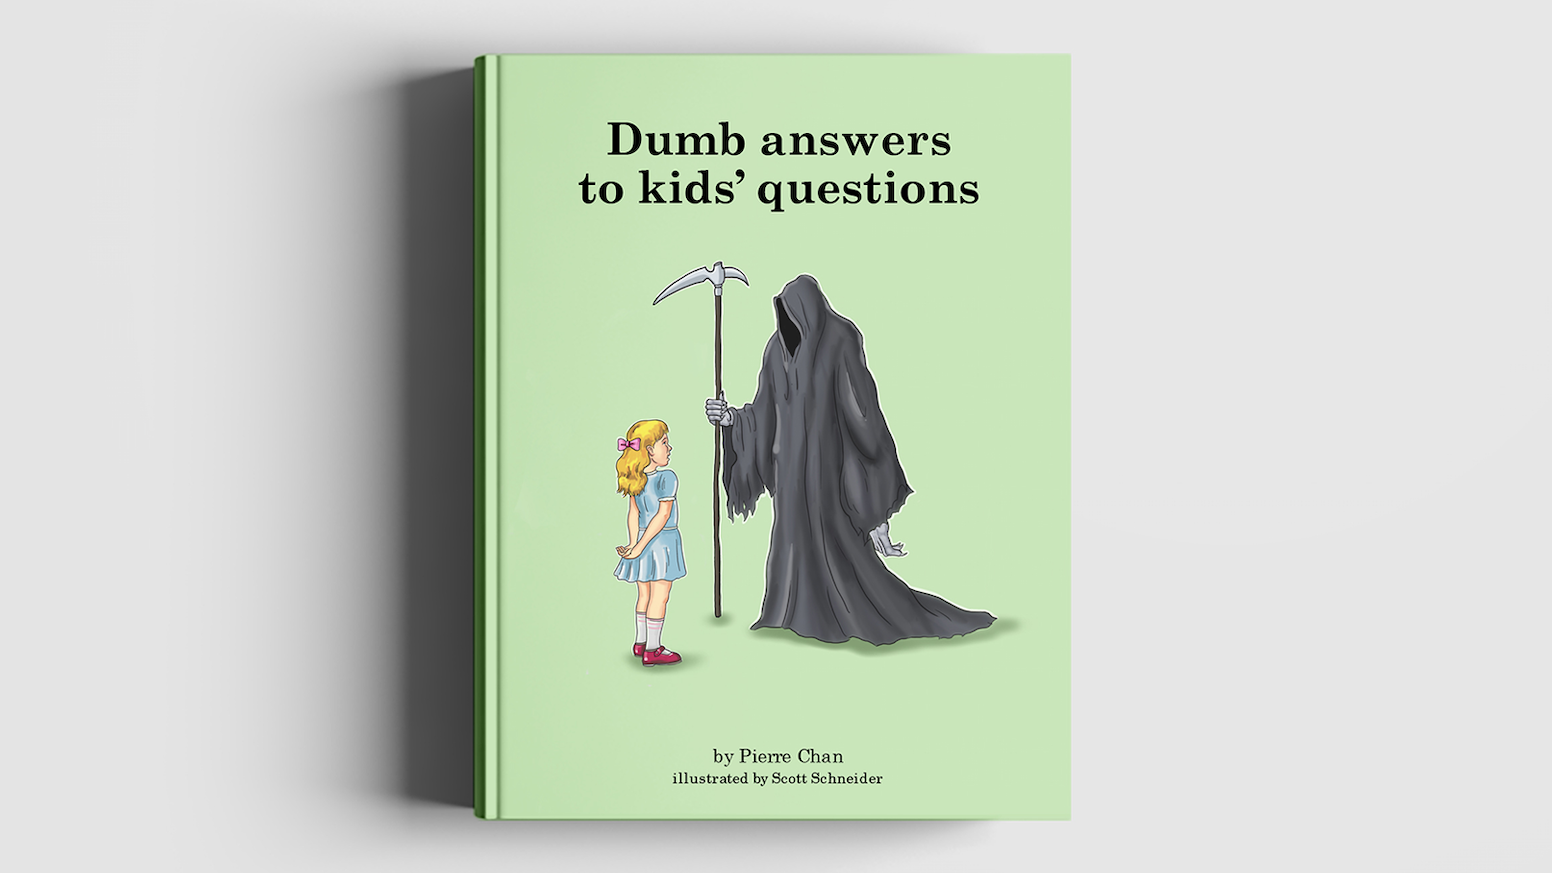 Kids ask a lot of mind-numbingly dumb questions. This book gives them some even dumber answers.